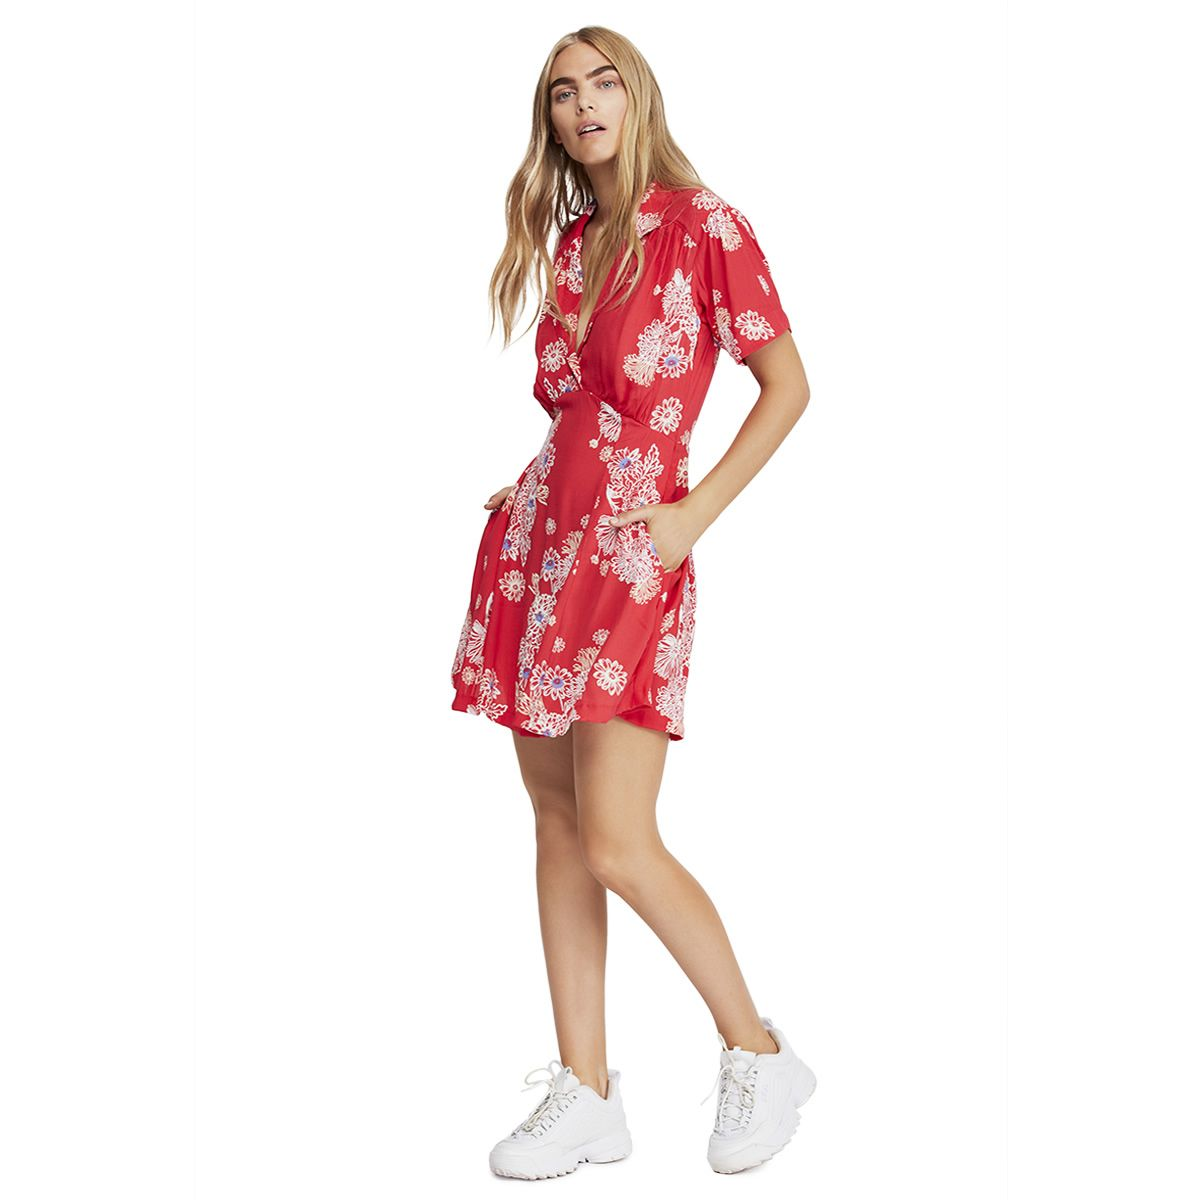 4c6ac1d2a1a41 Free People Dresses for Women - Macy's